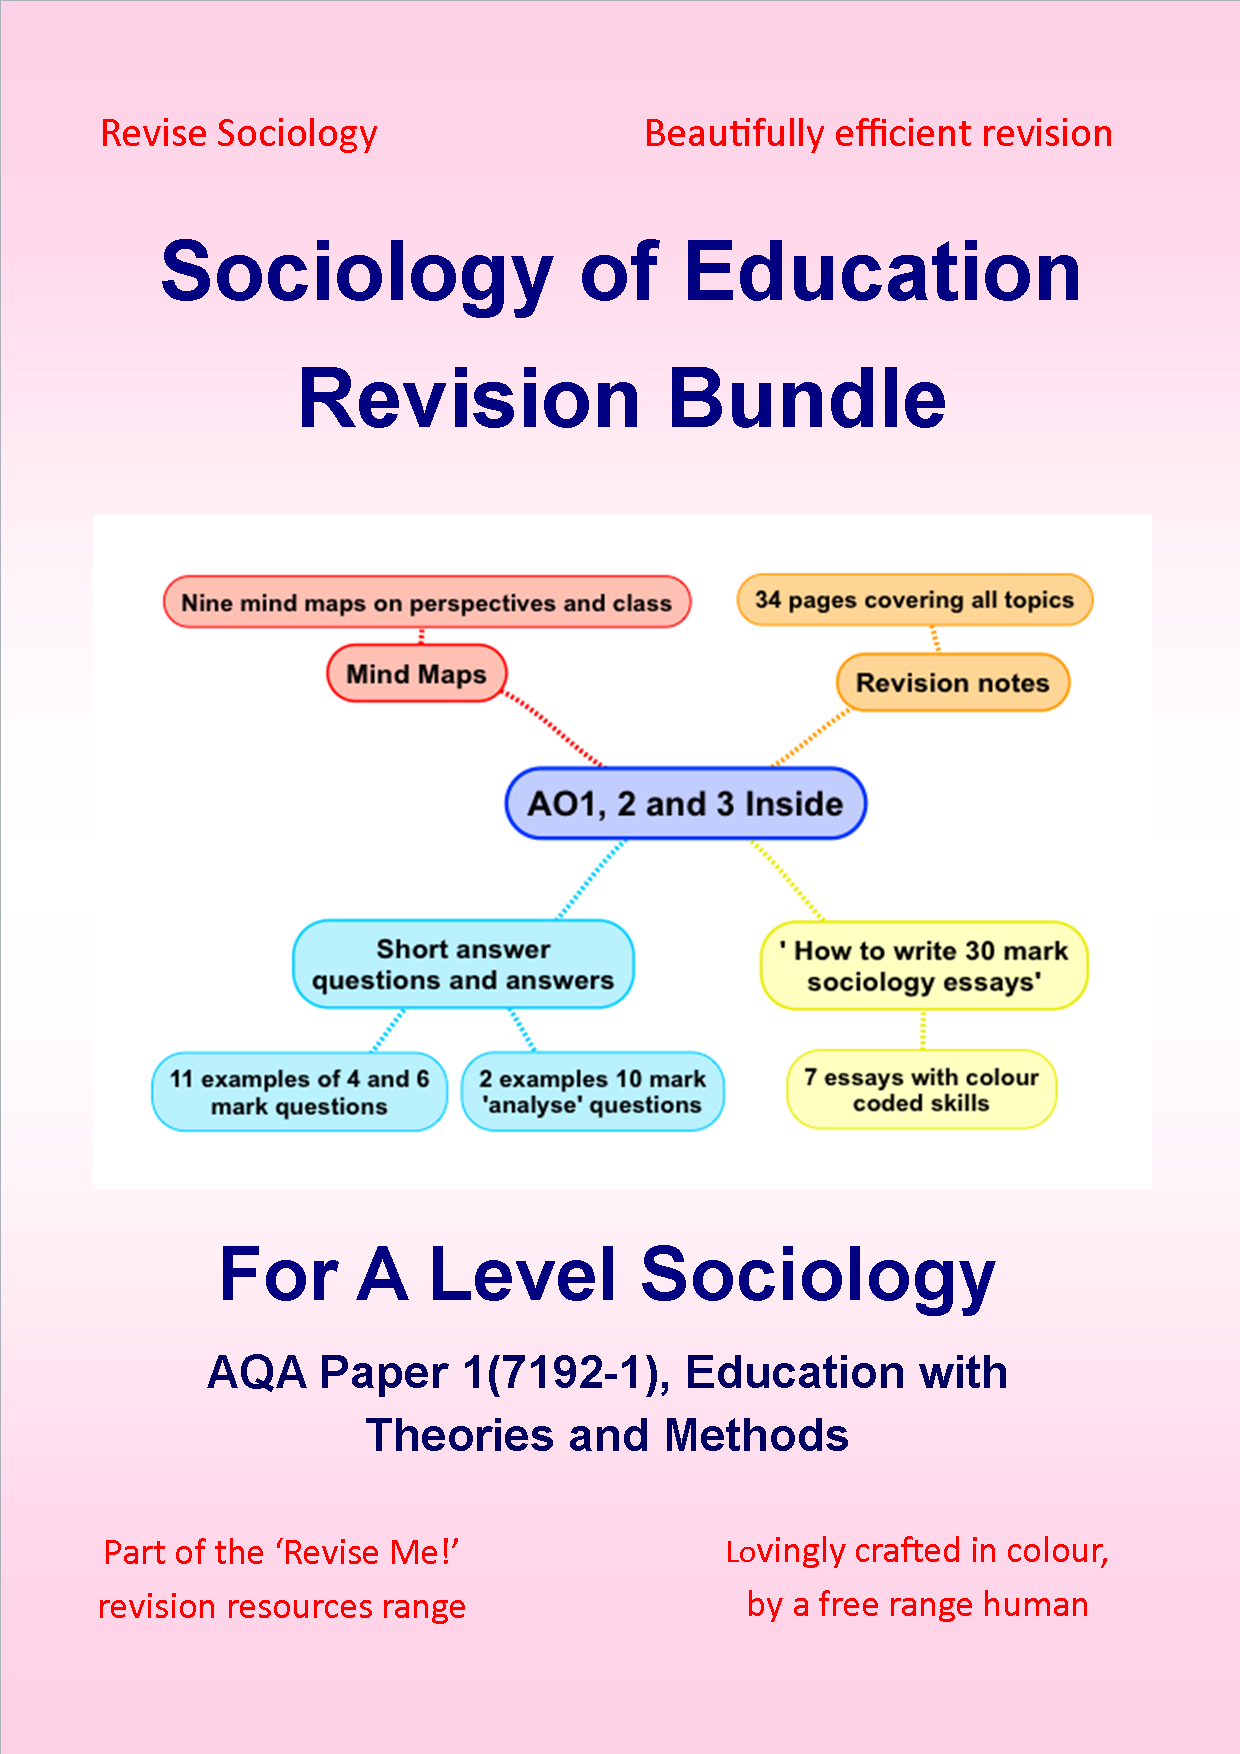 023 Education Revision Bundle Coverw212 Research Paper Best Sociology Top Topics Full